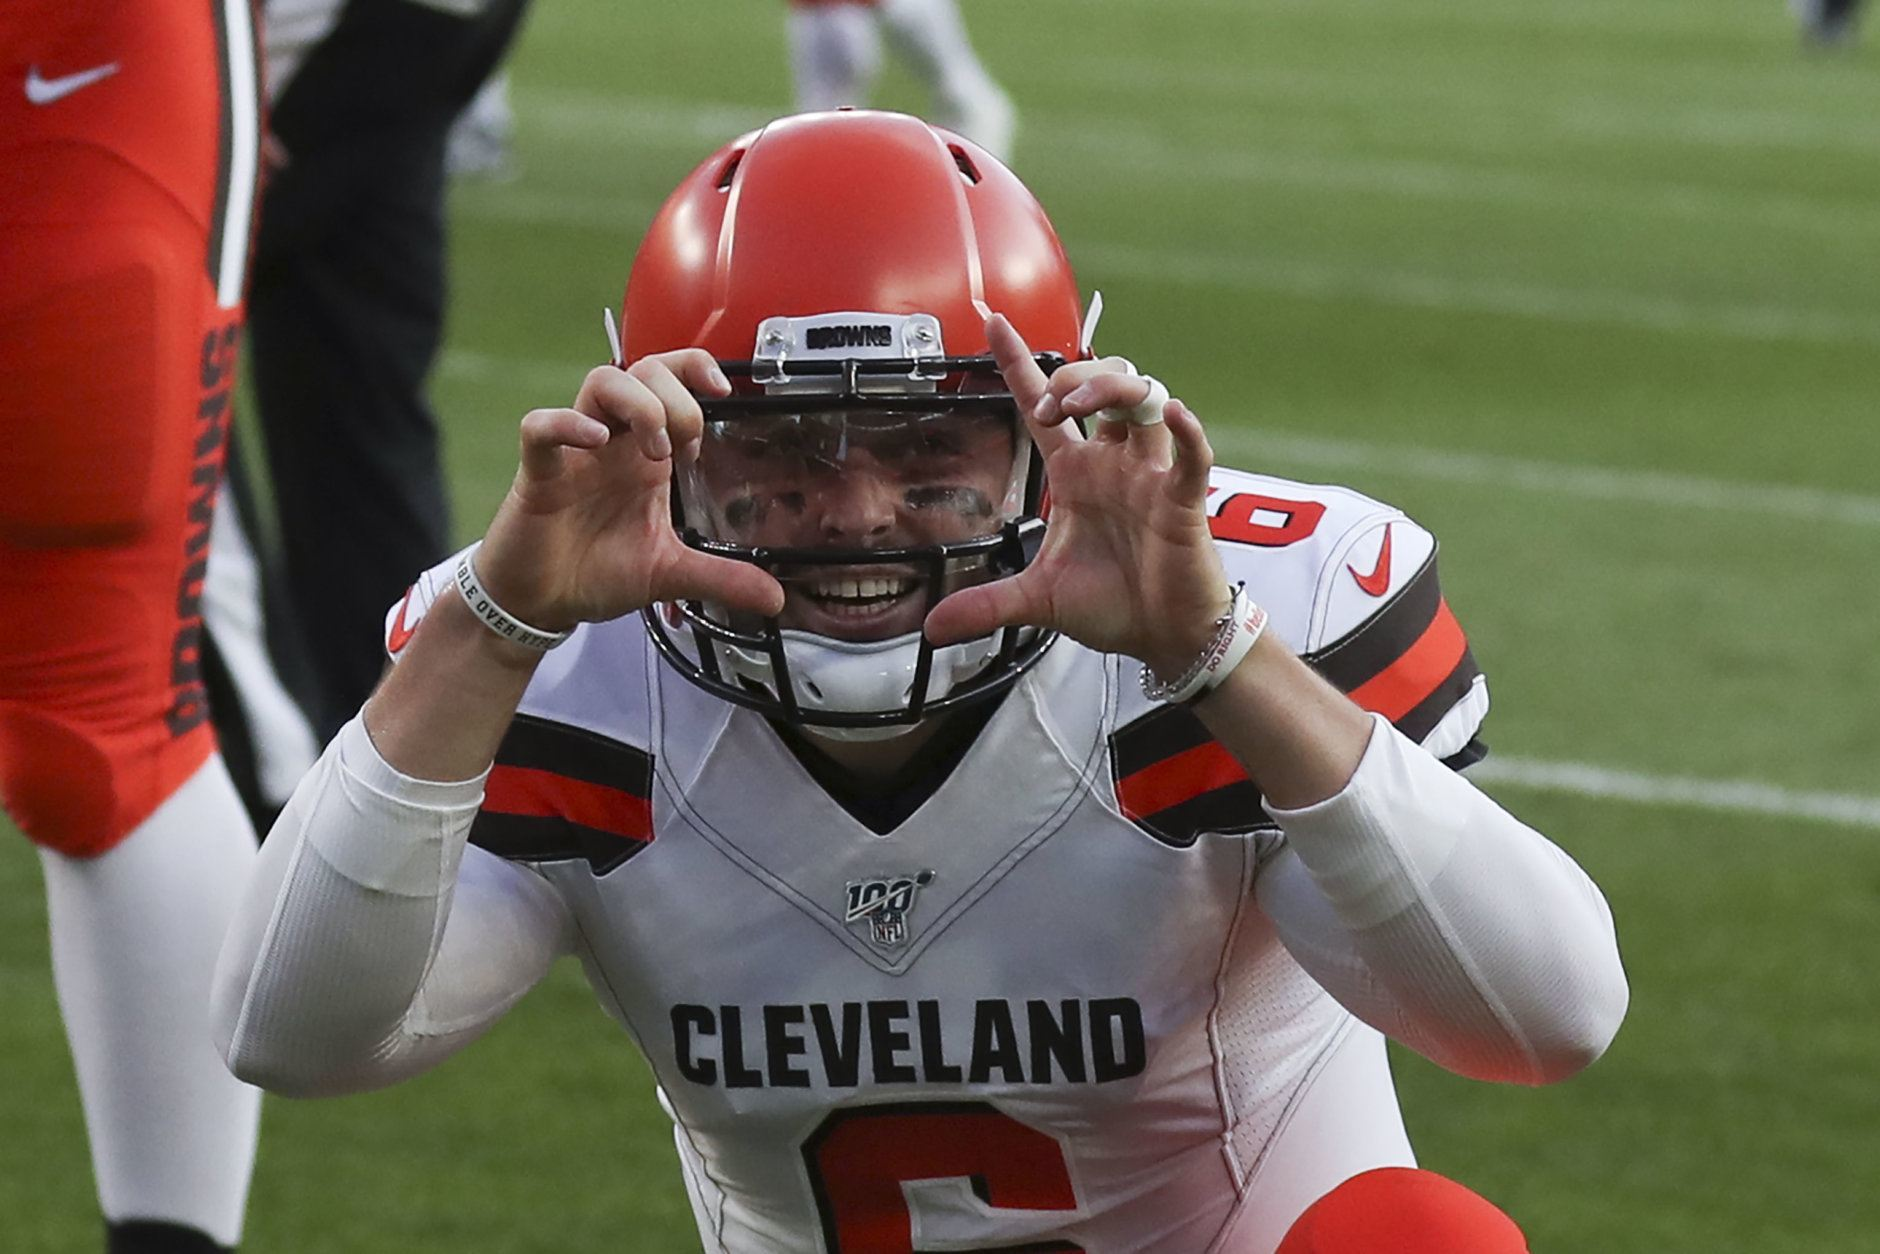 """<p><b>Are the Browns for real?</b></p> <p>Cleveland is just two years removed from an 0-16 eyesore, but now find themselves in the unfamiliar position of being saddled with the <a href=""""https://www.espn.com/chalk/story/_/id/27418344/bears-browns-attracting-most-super-bowl-bets"""" target=""""_blank"""" rel=""""noopener noreferrer"""" data-saferedirecturl=""""https://www.google.com/url?q=https://www.espn.com/chalk/story/_/id/27418344/bears-browns-attracting-most-super-bowl-bets&amp;source=gmail&amp;ust=1567097099847000&amp;usg=AFQjCNHJxENGzBiUIBbm-qtbAOF1IvRM3A"""">expectations of being Super Bowl contenders</a>. That&#8217;s what a 5-2 finish to 2018 and an offseason of adding Odell Beckham Jr., Olivier Vernon, Kareem Hunt and Sheldon Richardson to an already talented roster will do.</p> <p>The Browns have embraced the challenge but<a href=""""https://profootballtalk.nbcsports.com/2019/05/24/john-dorsey-urges-browns-fans-dont-believe-the-hype/"""" target=""""_blank"""" rel=""""noopener noreferrer"""" data-saferedirecturl=""""https://www.google.com/url?q=https://profootballtalk.nbcsports.com/2019/05/24/john-dorsey-urges-browns-fans-dont-believe-the-hype/&amp;source=gmail&amp;ust=1567097099847000&amp;usg=AFQjCNE9K52bQyAaffRdhefGGqSdlcq44g"""">their top football executive is telling us not to believe the hype</a>. Is this a legit championship contender, or is the Dawg Pound barking up the wrong tree (again)?</p>"""